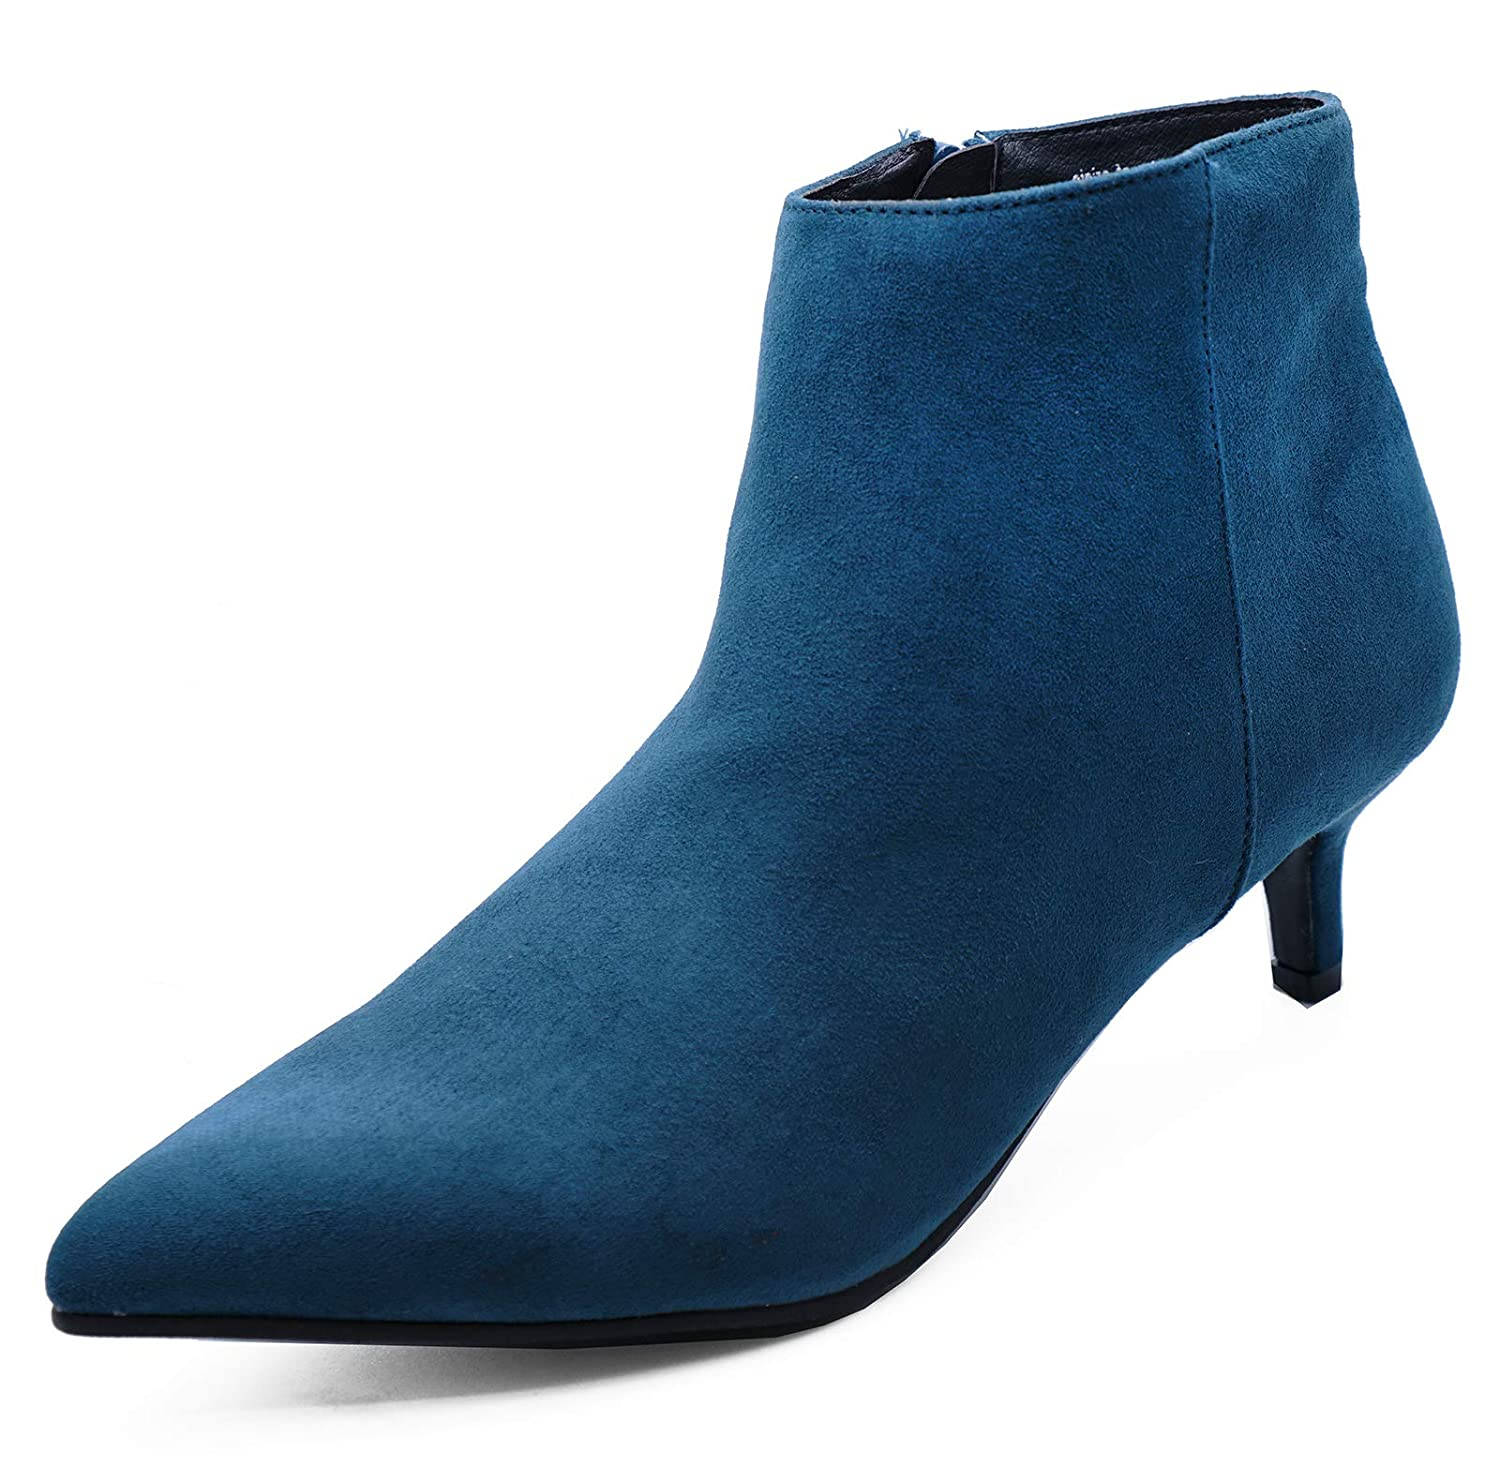 d3b71103fb0 Ladies Teal Zip-Up Wide-Fit Kitten Low Heel Faux Suede Ankle Boots Work  Shoes Sizes 3-9